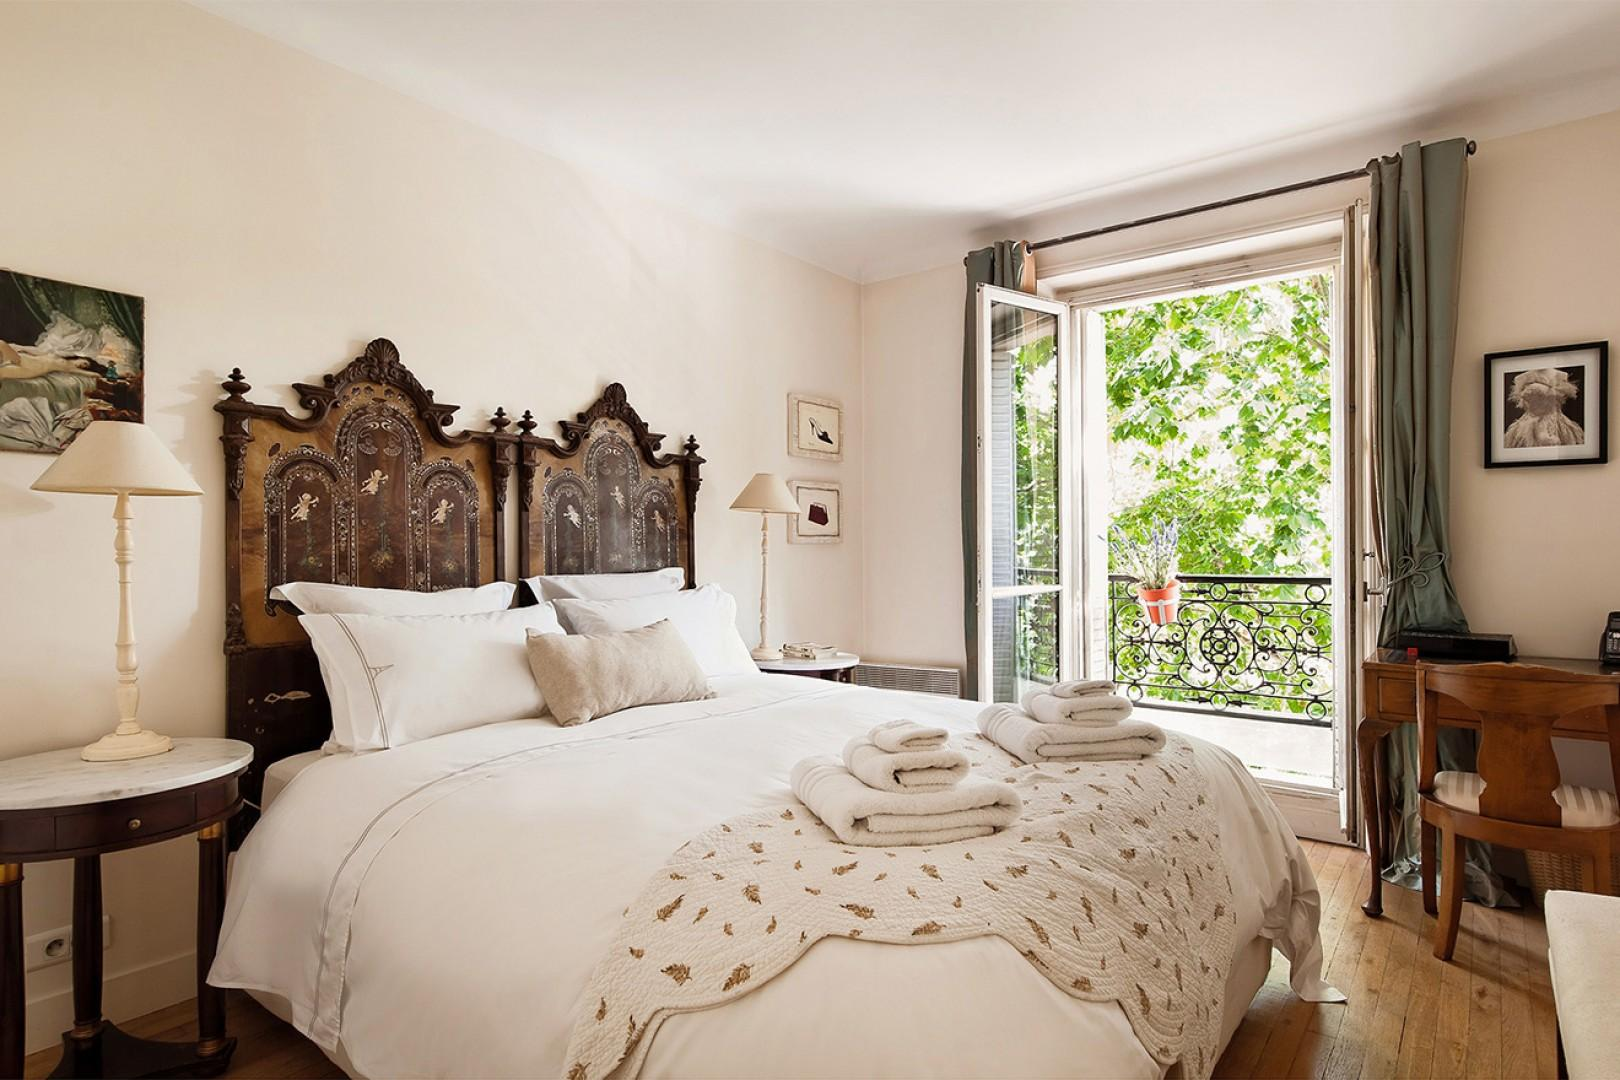 Enjoy the romantic bedroom in a beautiful French style.